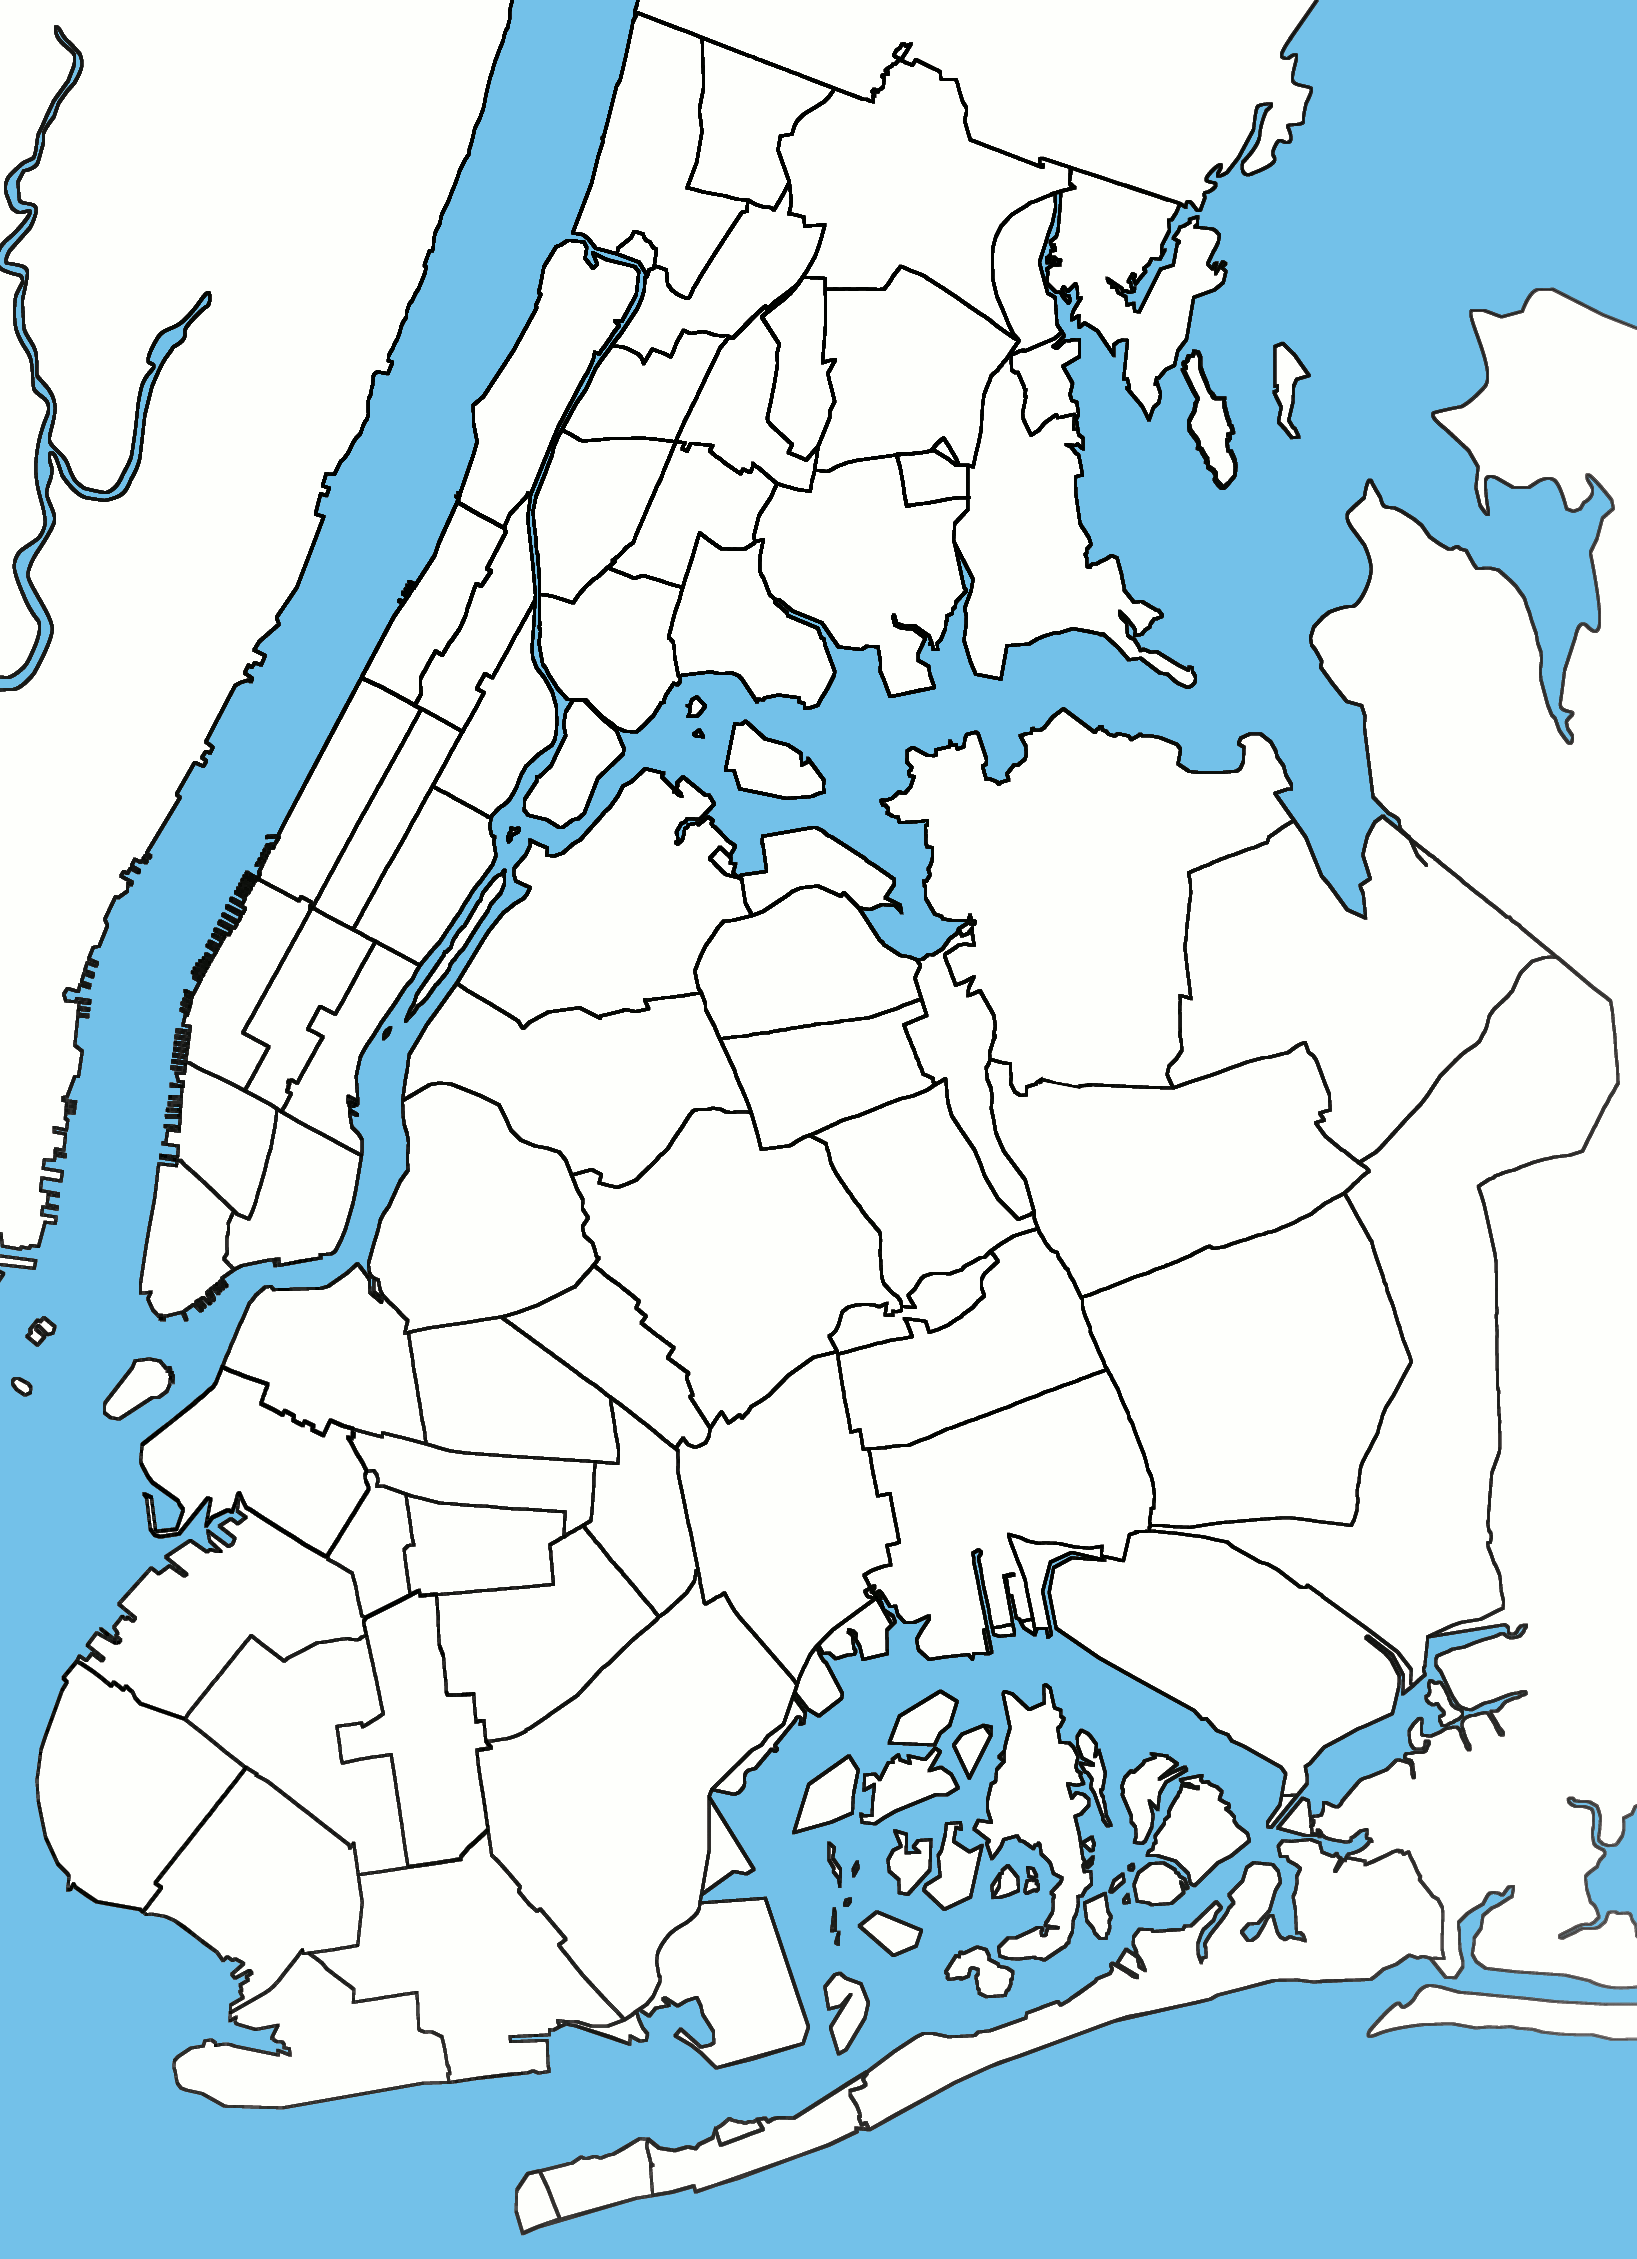 httpuploadwikimediaorgwikipediacommonsfffnew york city neighborhoods blank linewidthpng